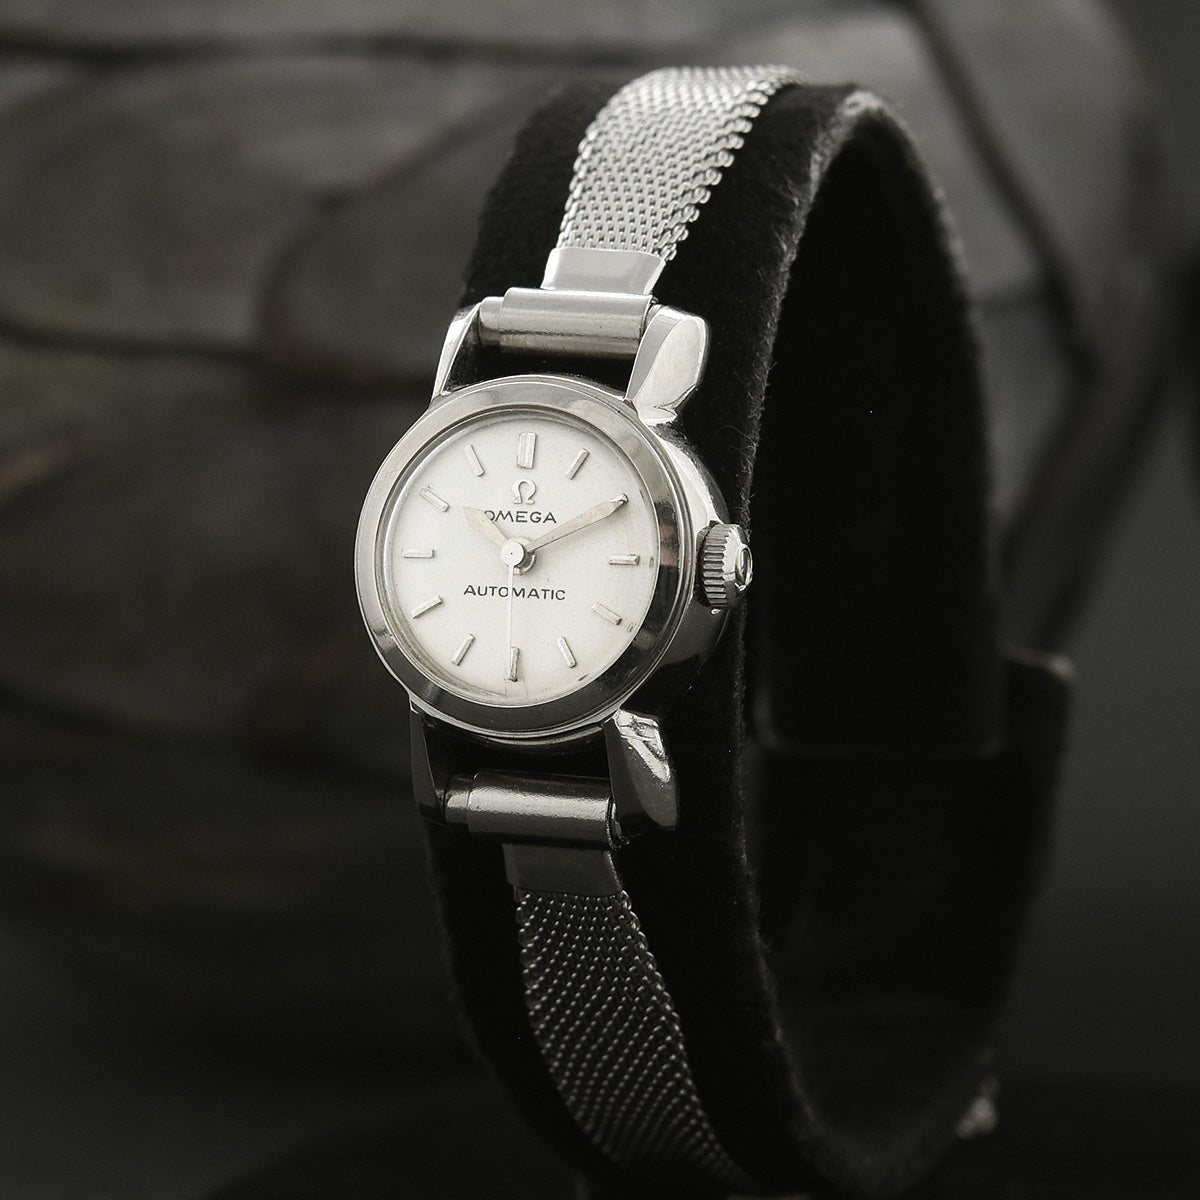 1958 OMEGA Automatic Ladies Vintage Cocktail Watch Ref. 2804-7SC